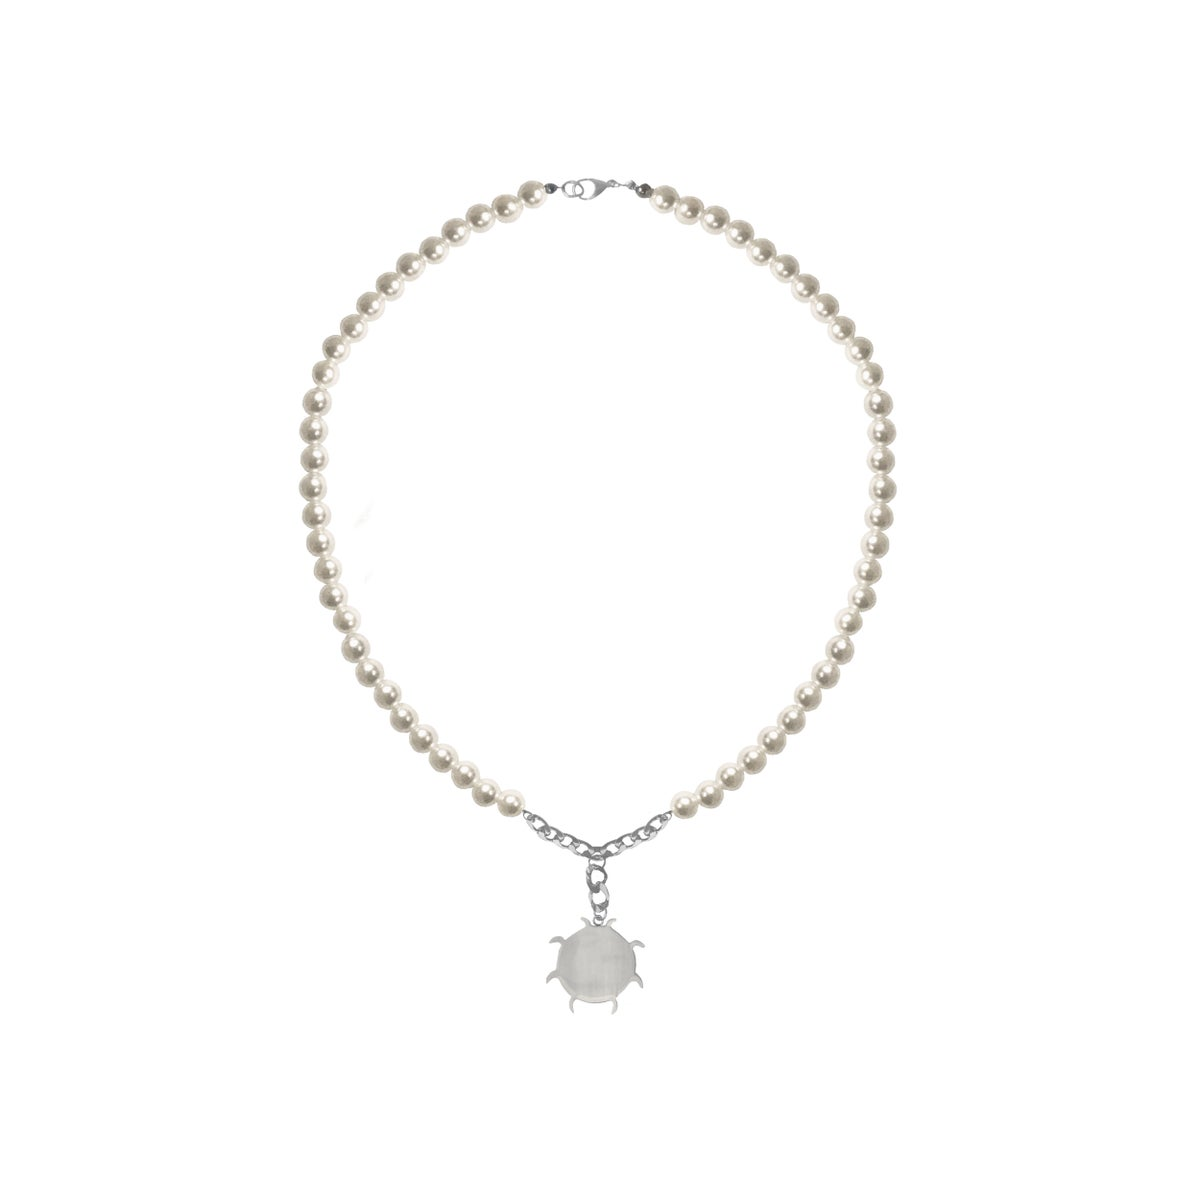 Image of SALES: PEARL SUN LOGO NECKLACE (unisex)